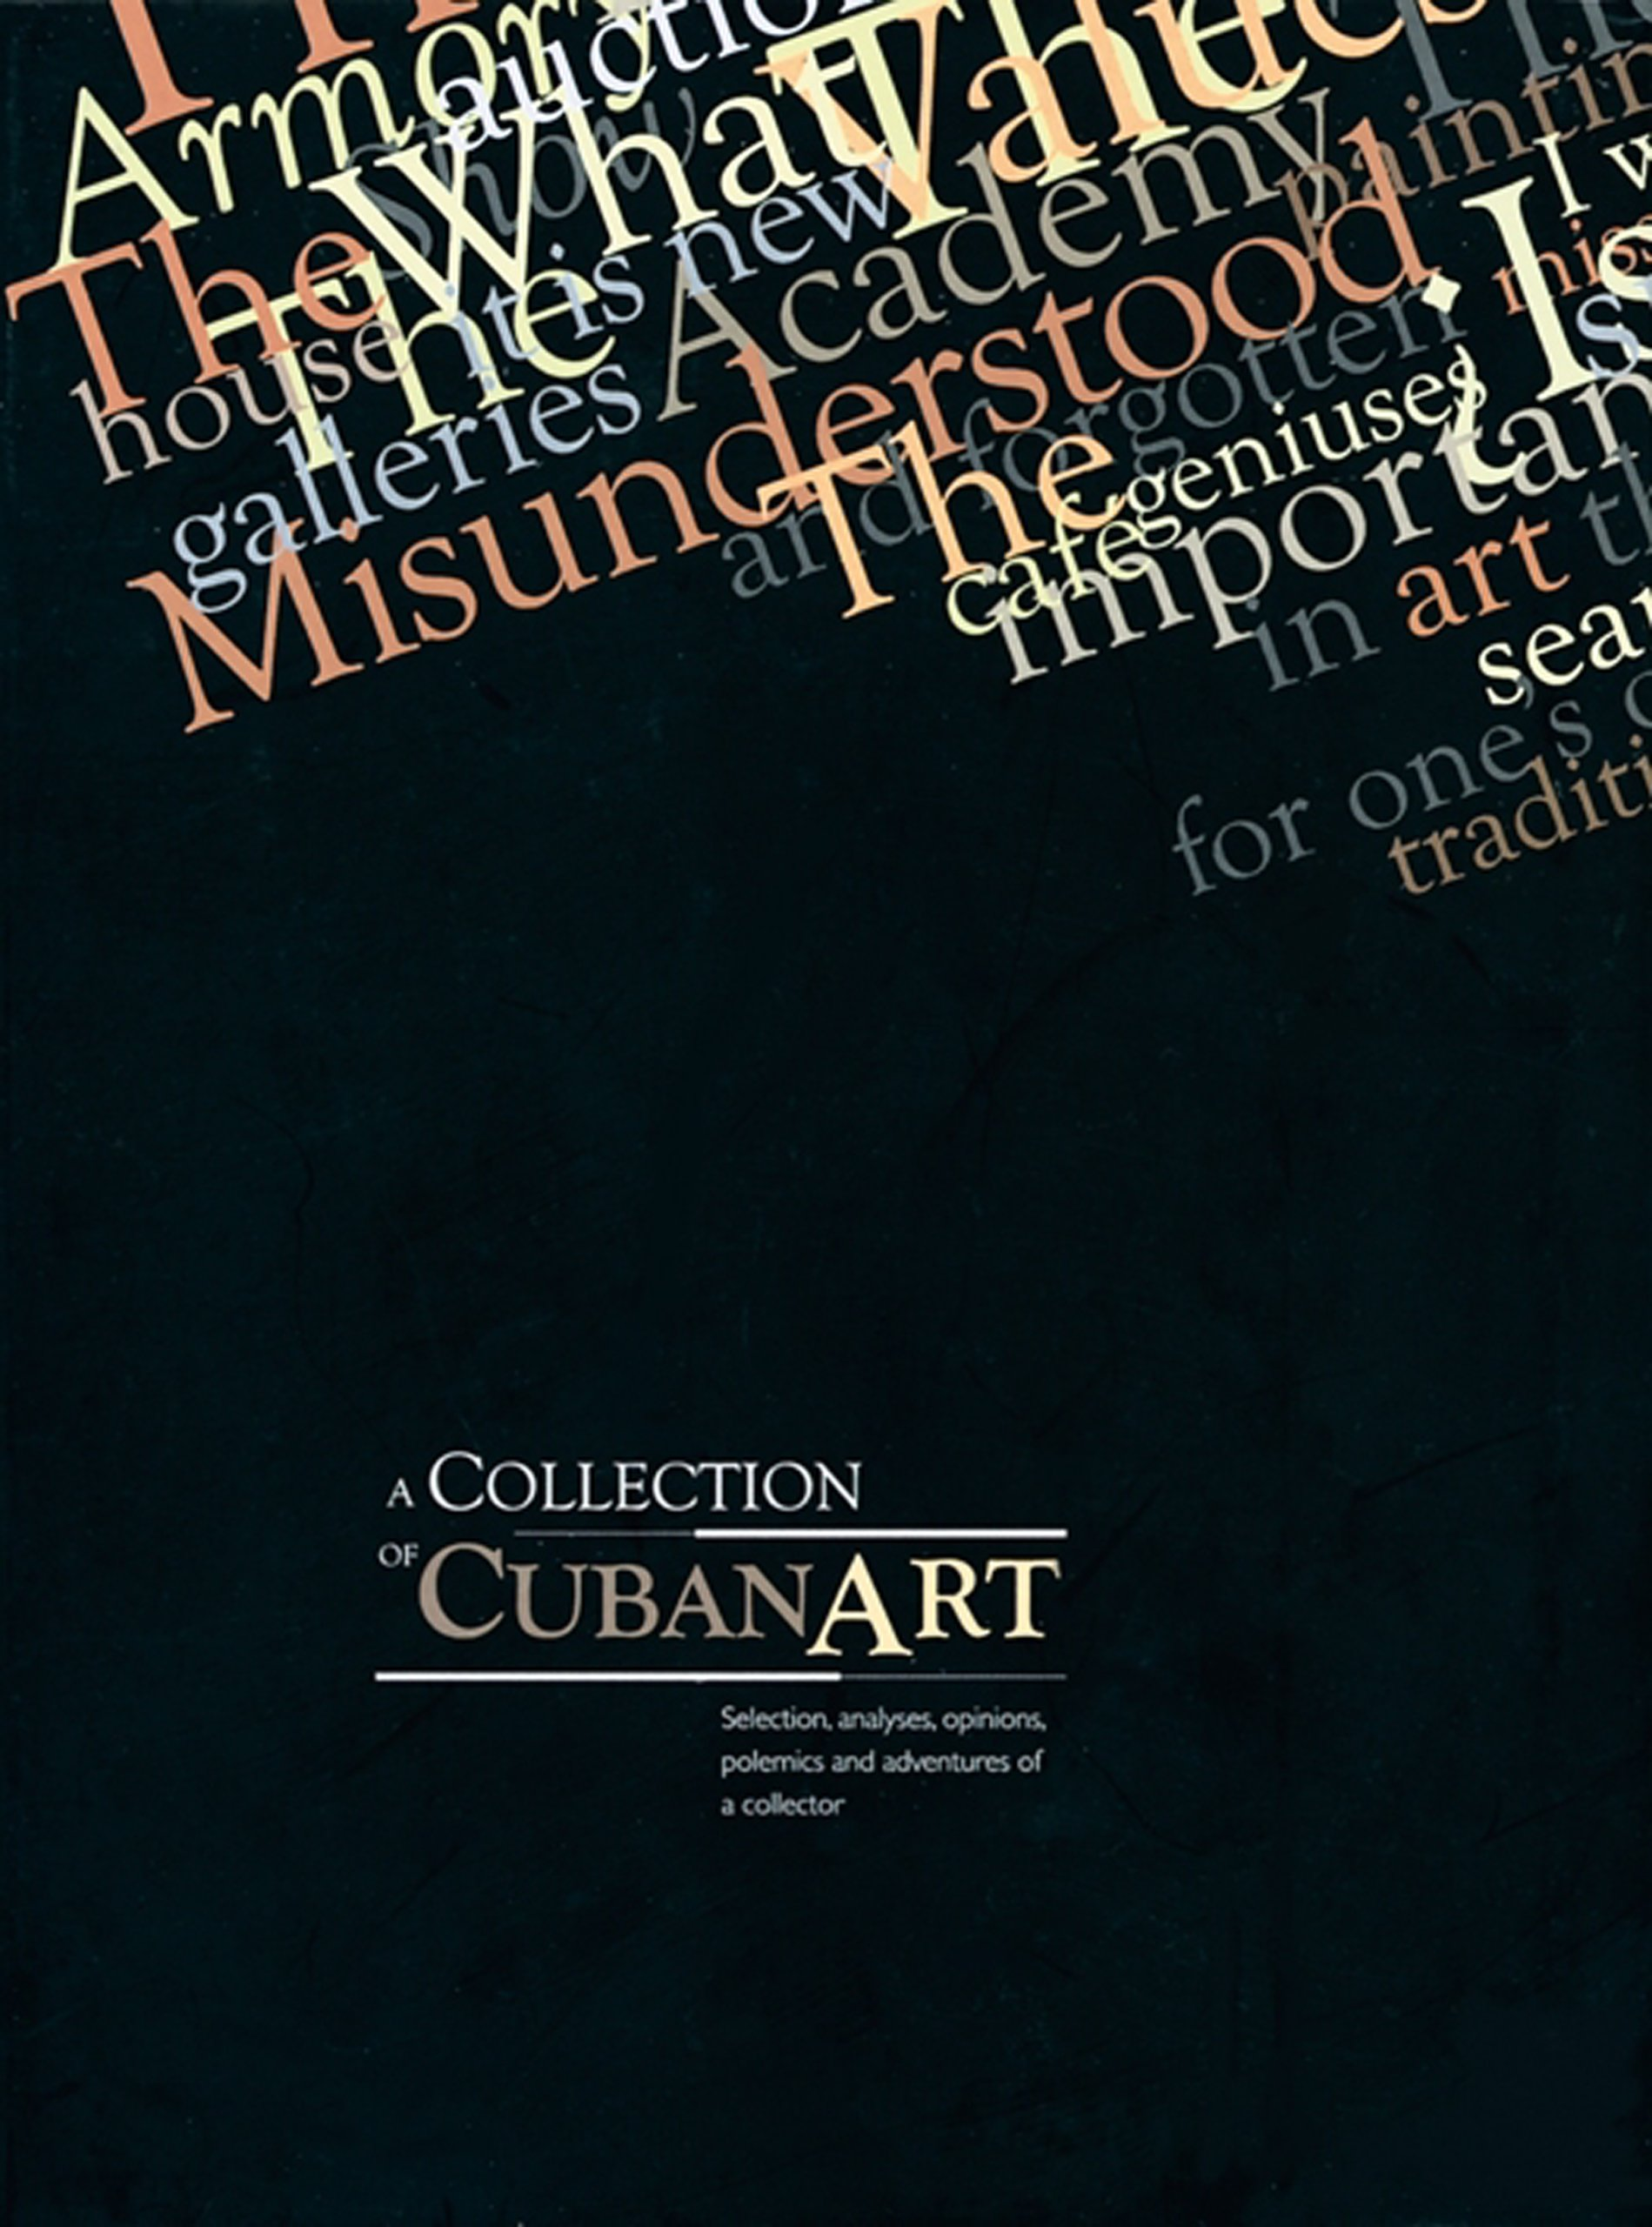 A Collection of Cuban Art: Selection, Analyses, Opinions, Polemics and Adventures of a Collector pdf epub